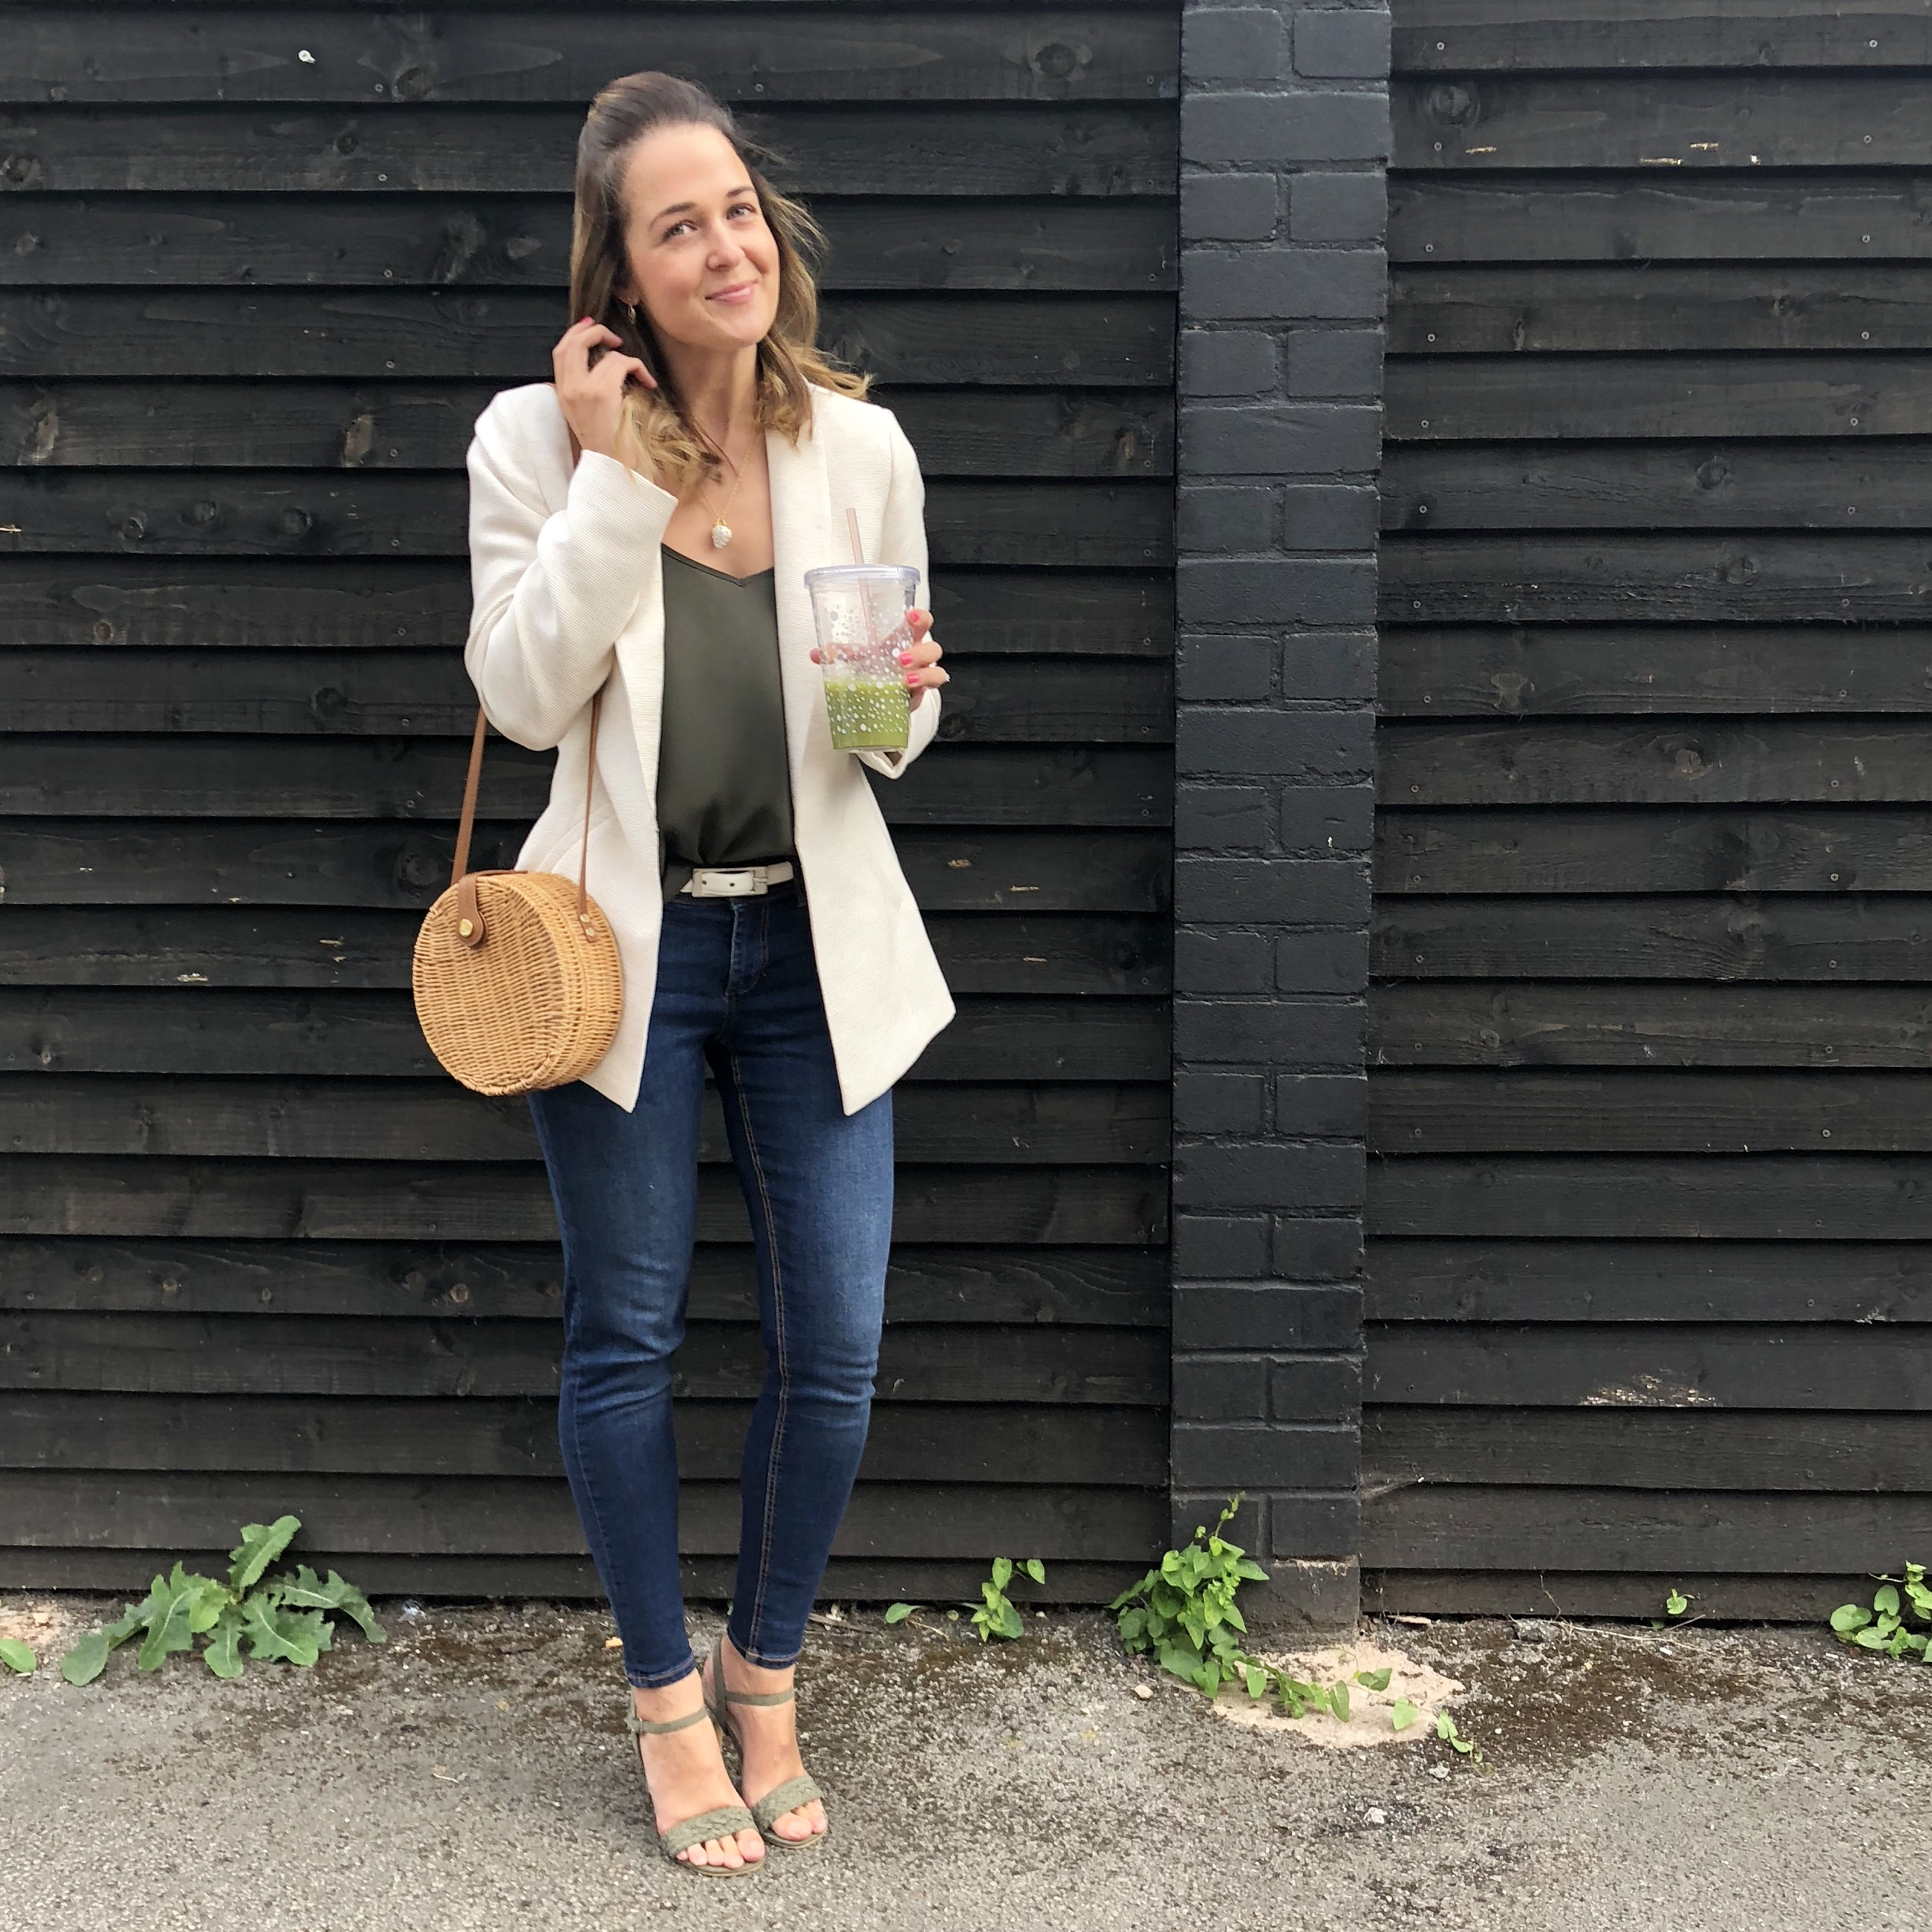 Rebecca Denise wearing Zara and Mint Velvet Jacket